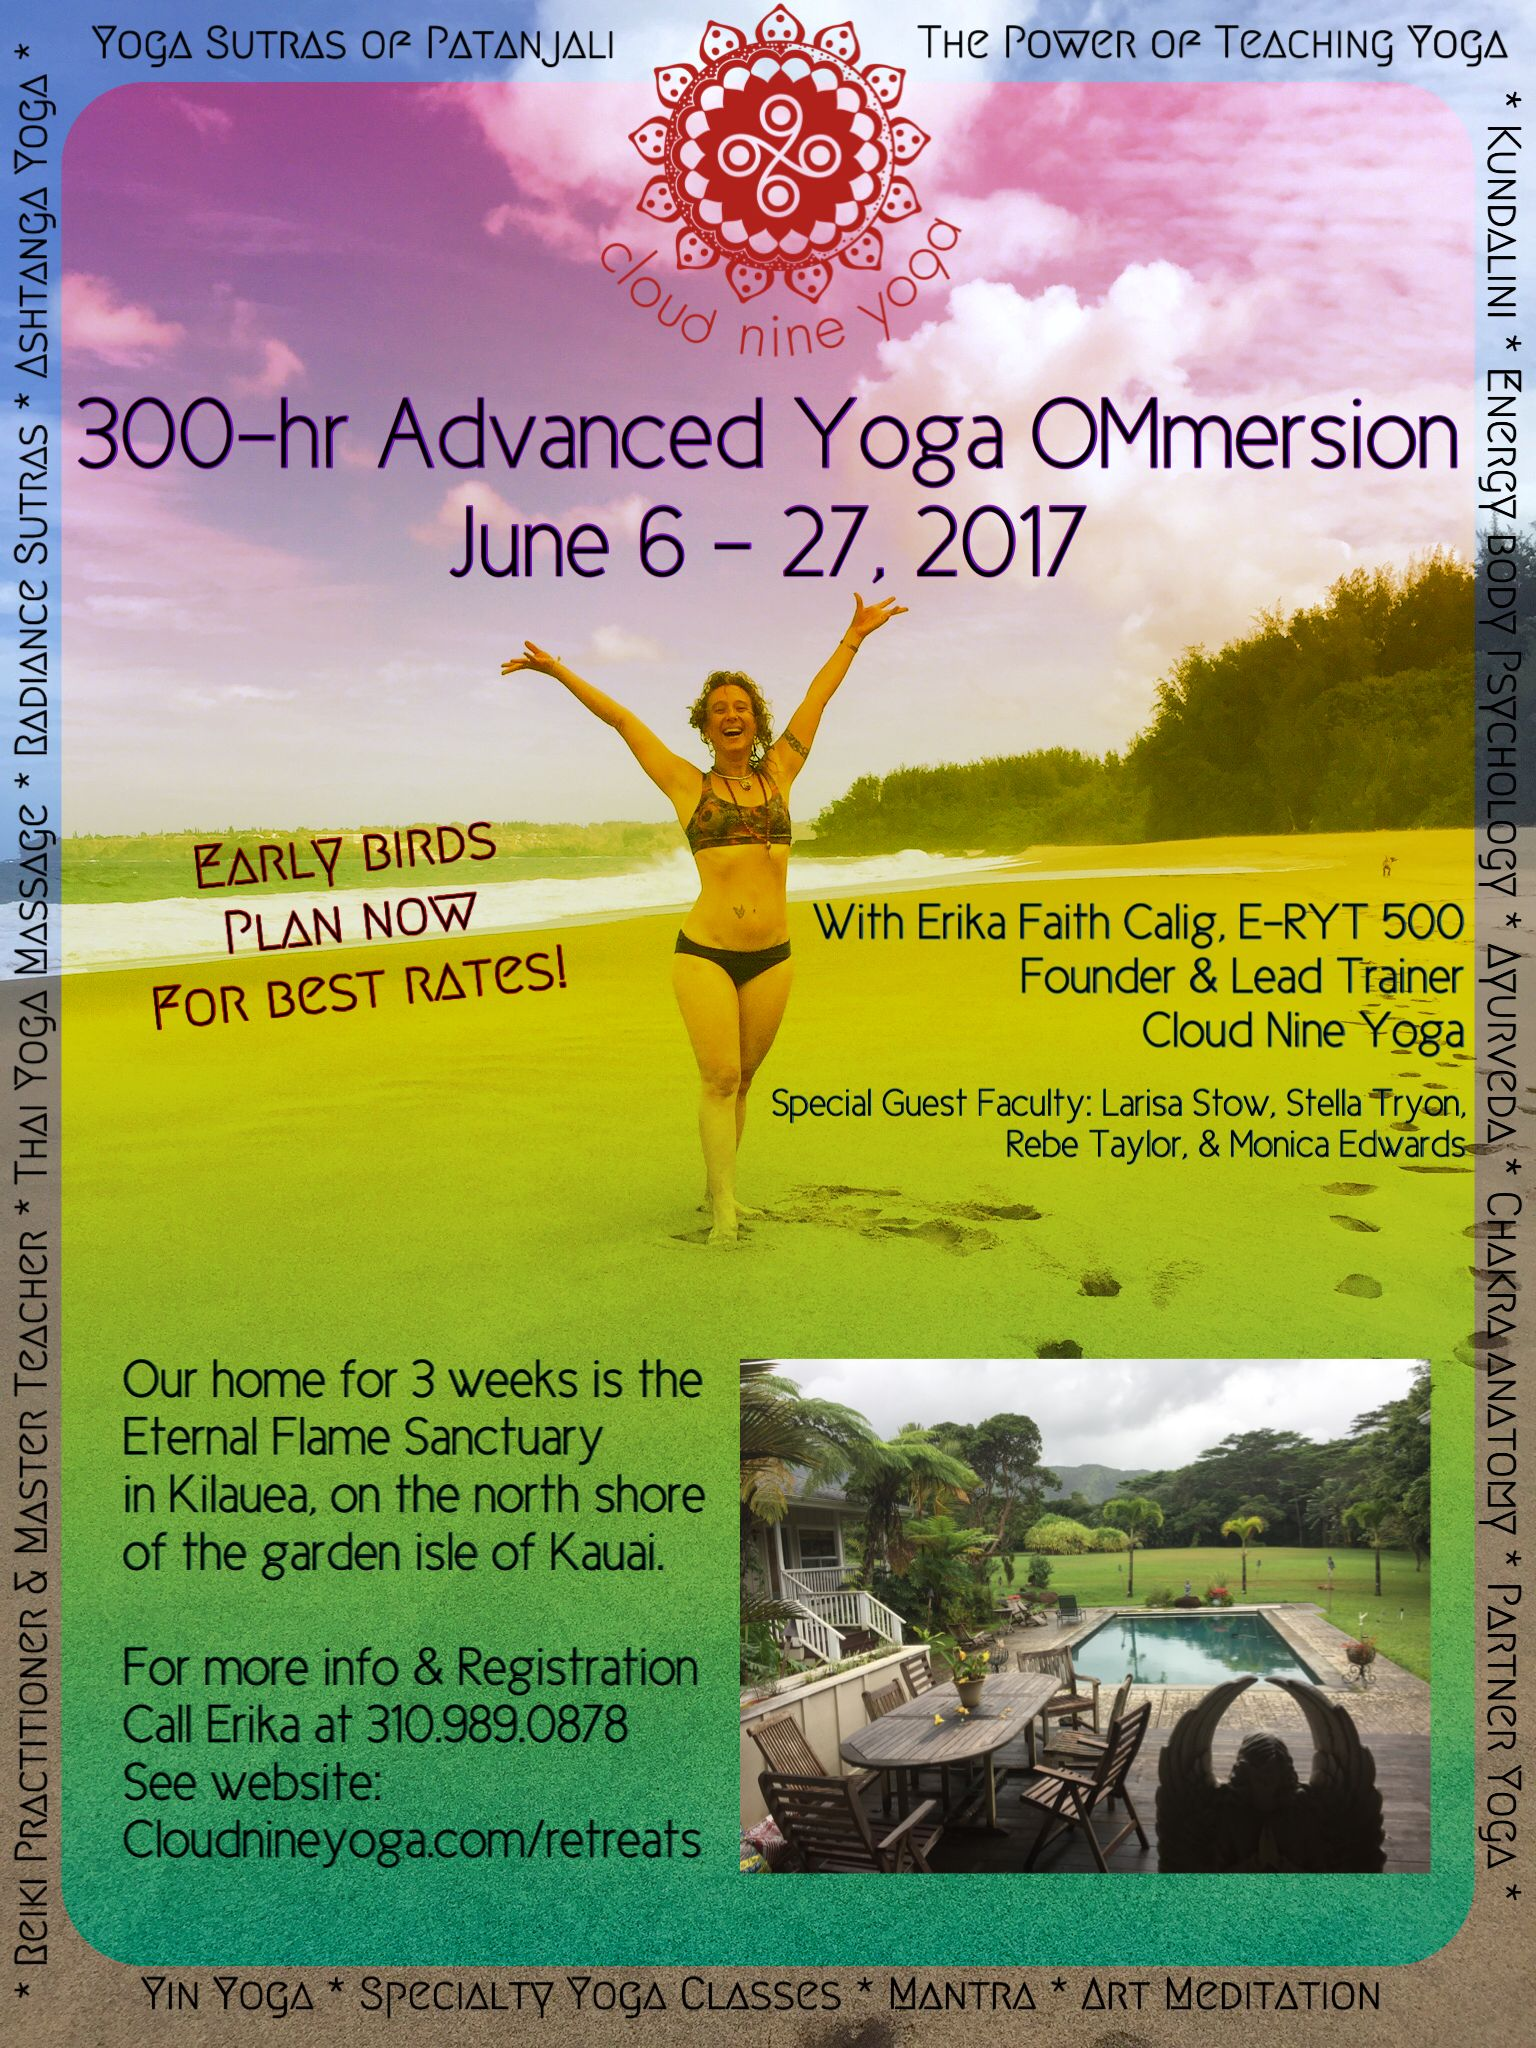 This is the opportunity of a lifetime to study with Master Yogini ...